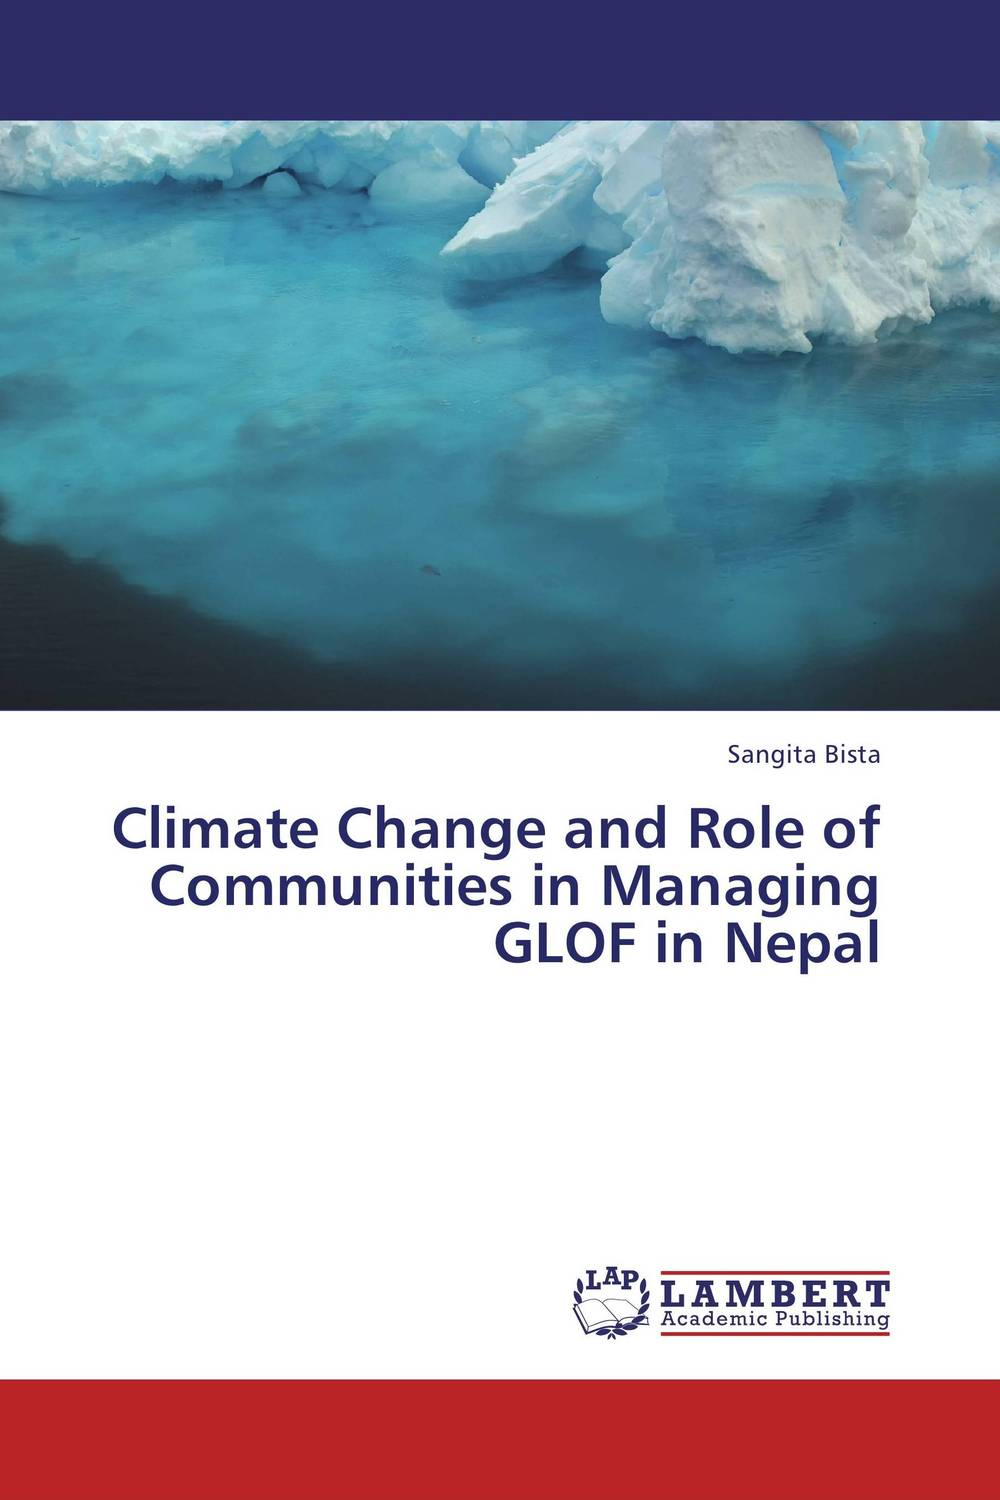 Climate Change and Role of Communities in Managing GLOF in Nepal ganesh deshmukh sudarshan latake and avinash satpute role of trichoderma viride in chickpea wilt